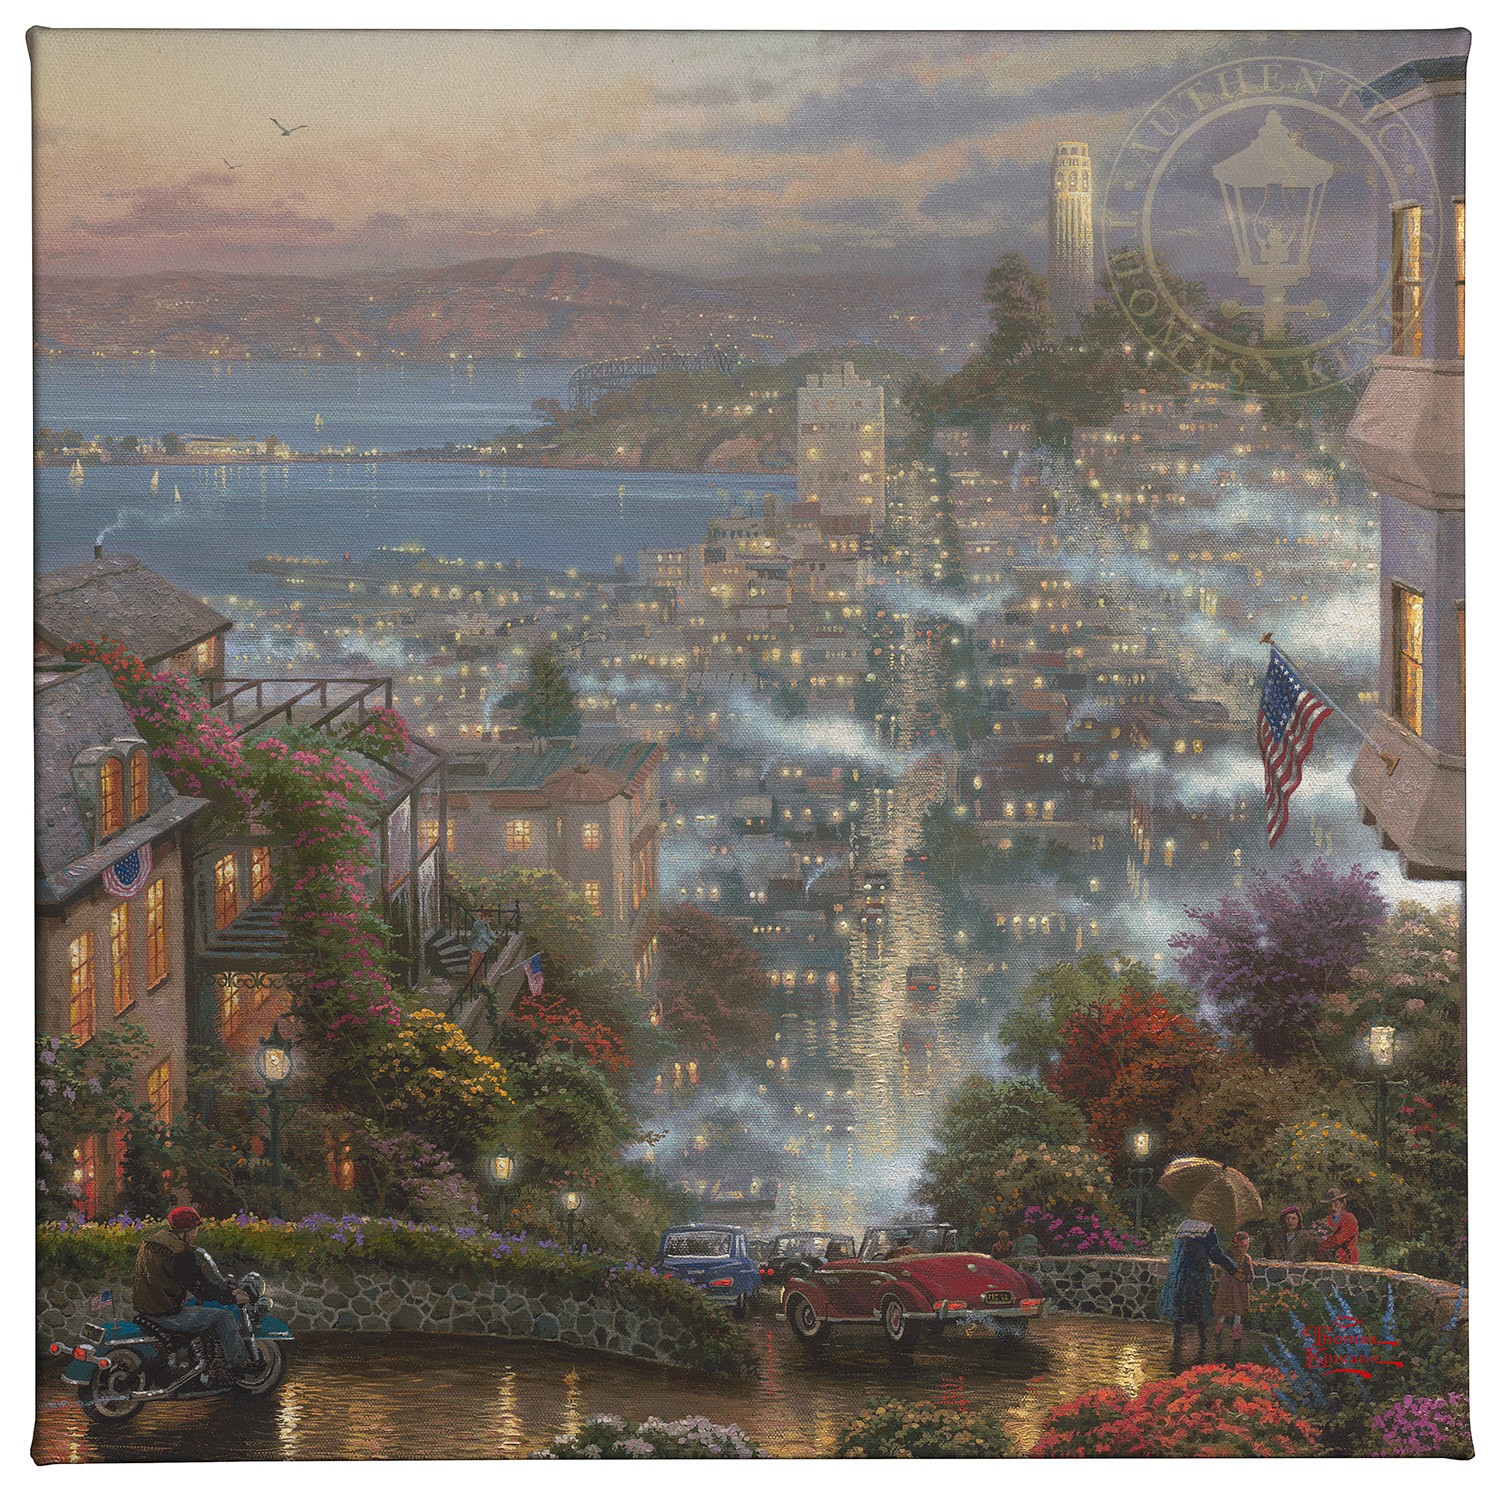 Thomas Kinkade Sound of Music  14 x 14 Gallery Wrap Canvas